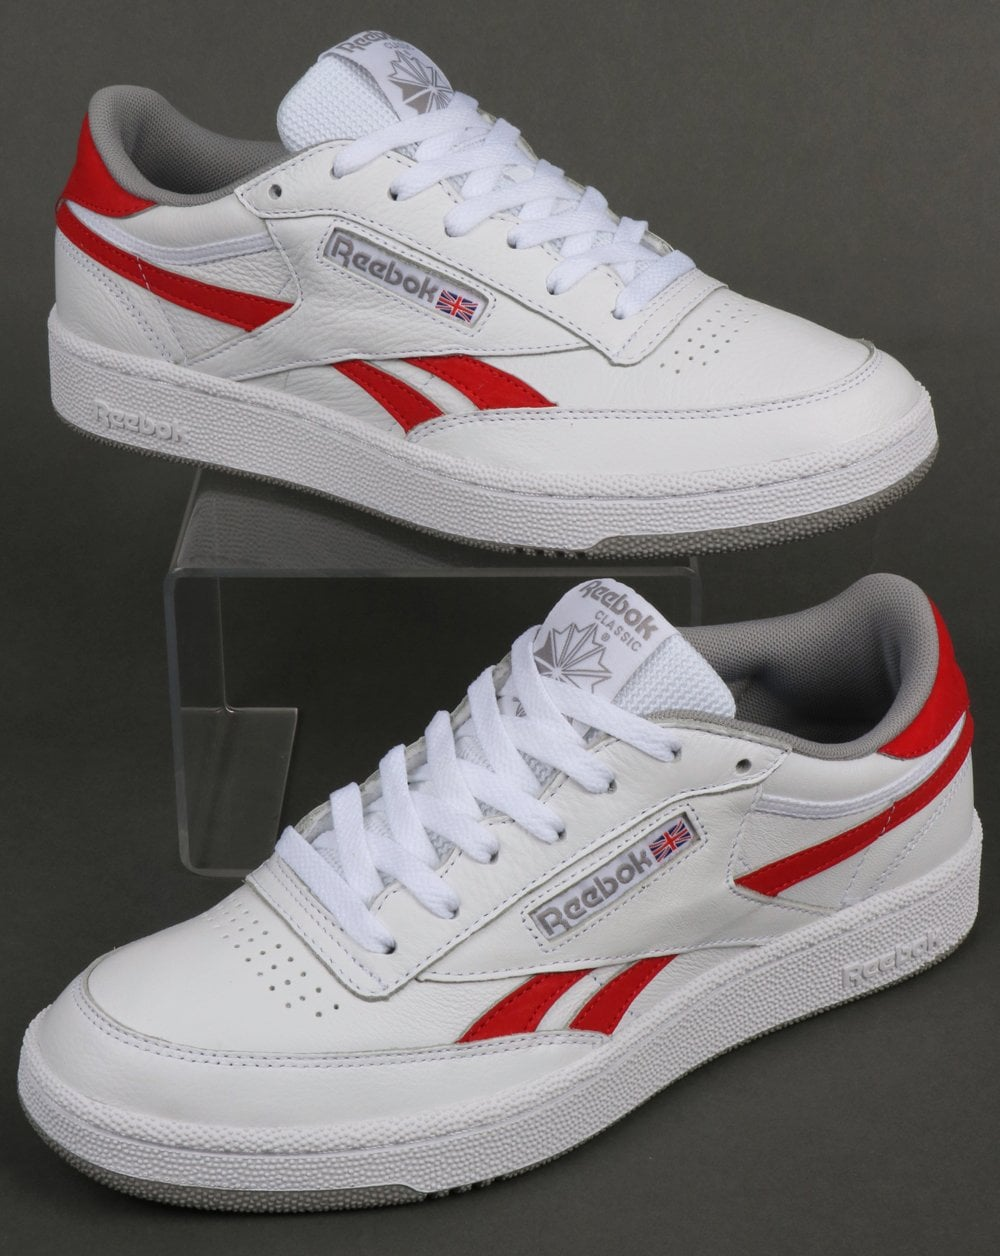 Reebok Reebok Revenge Plus Trainers White Red d04c156e580